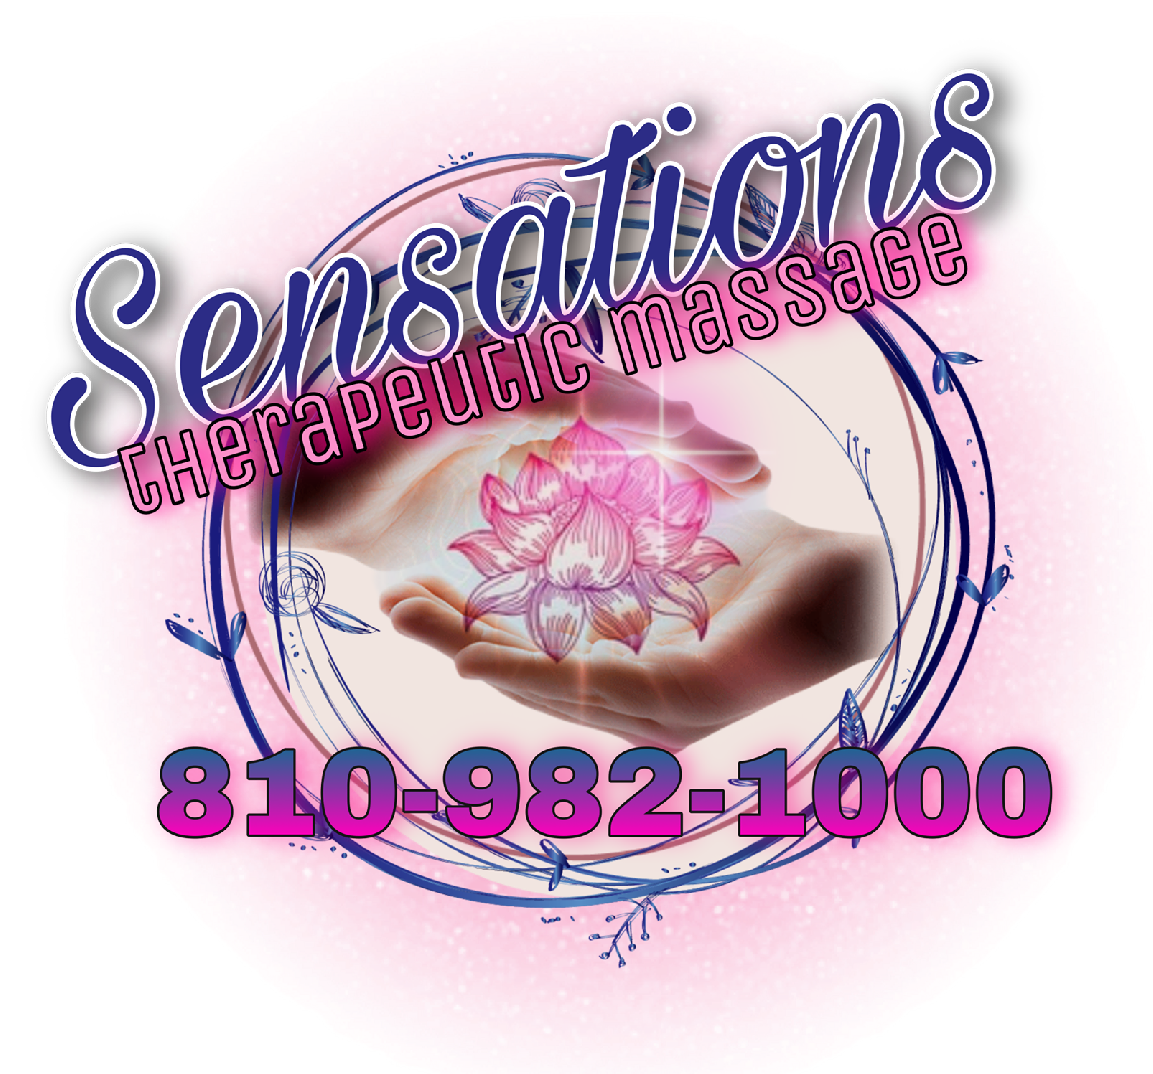 Sensations Therapeutic Massage